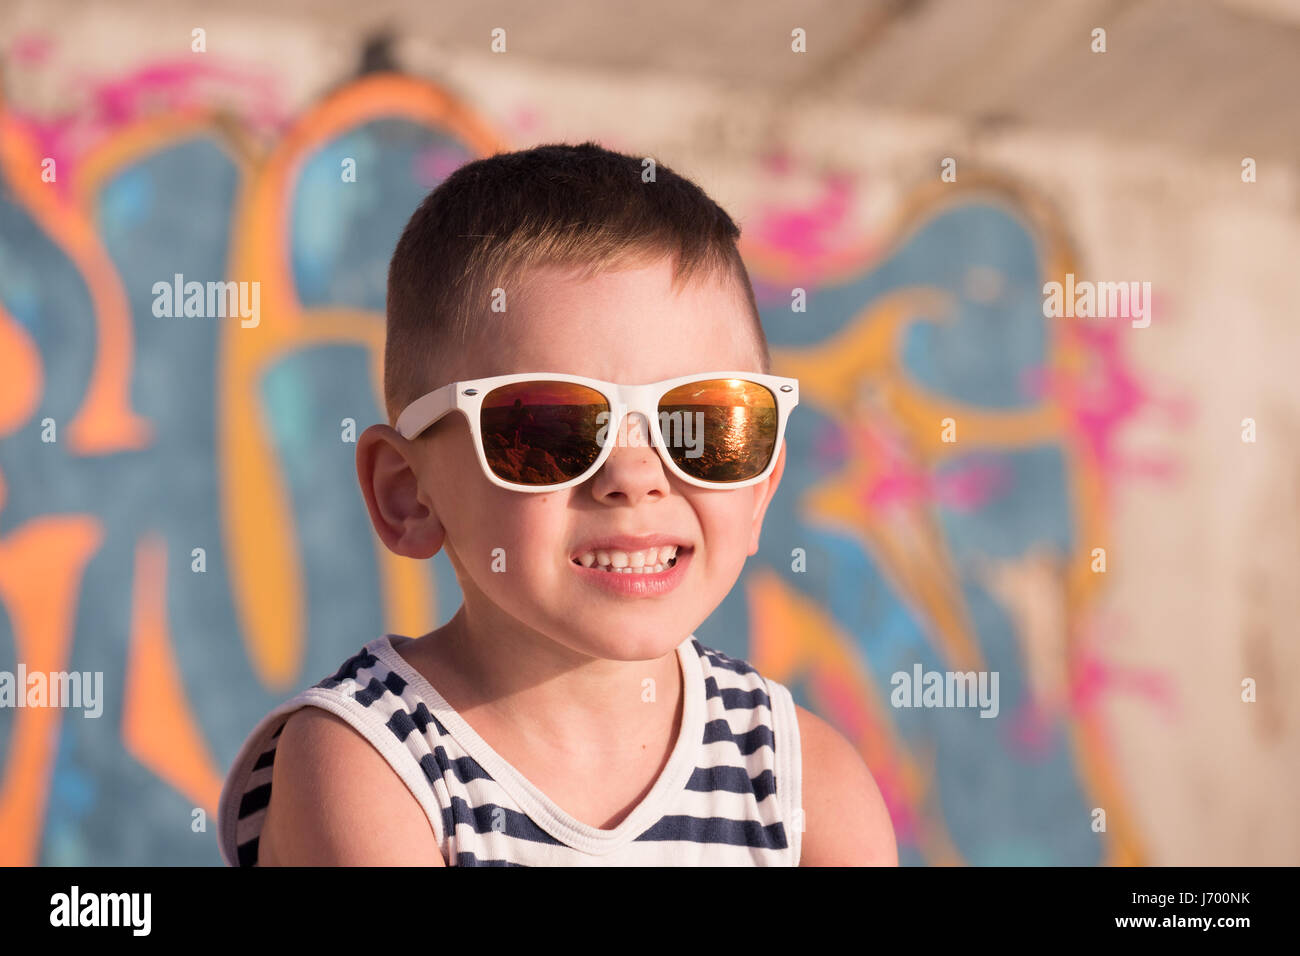 funny small kid wearing sunglasses with sea sunset